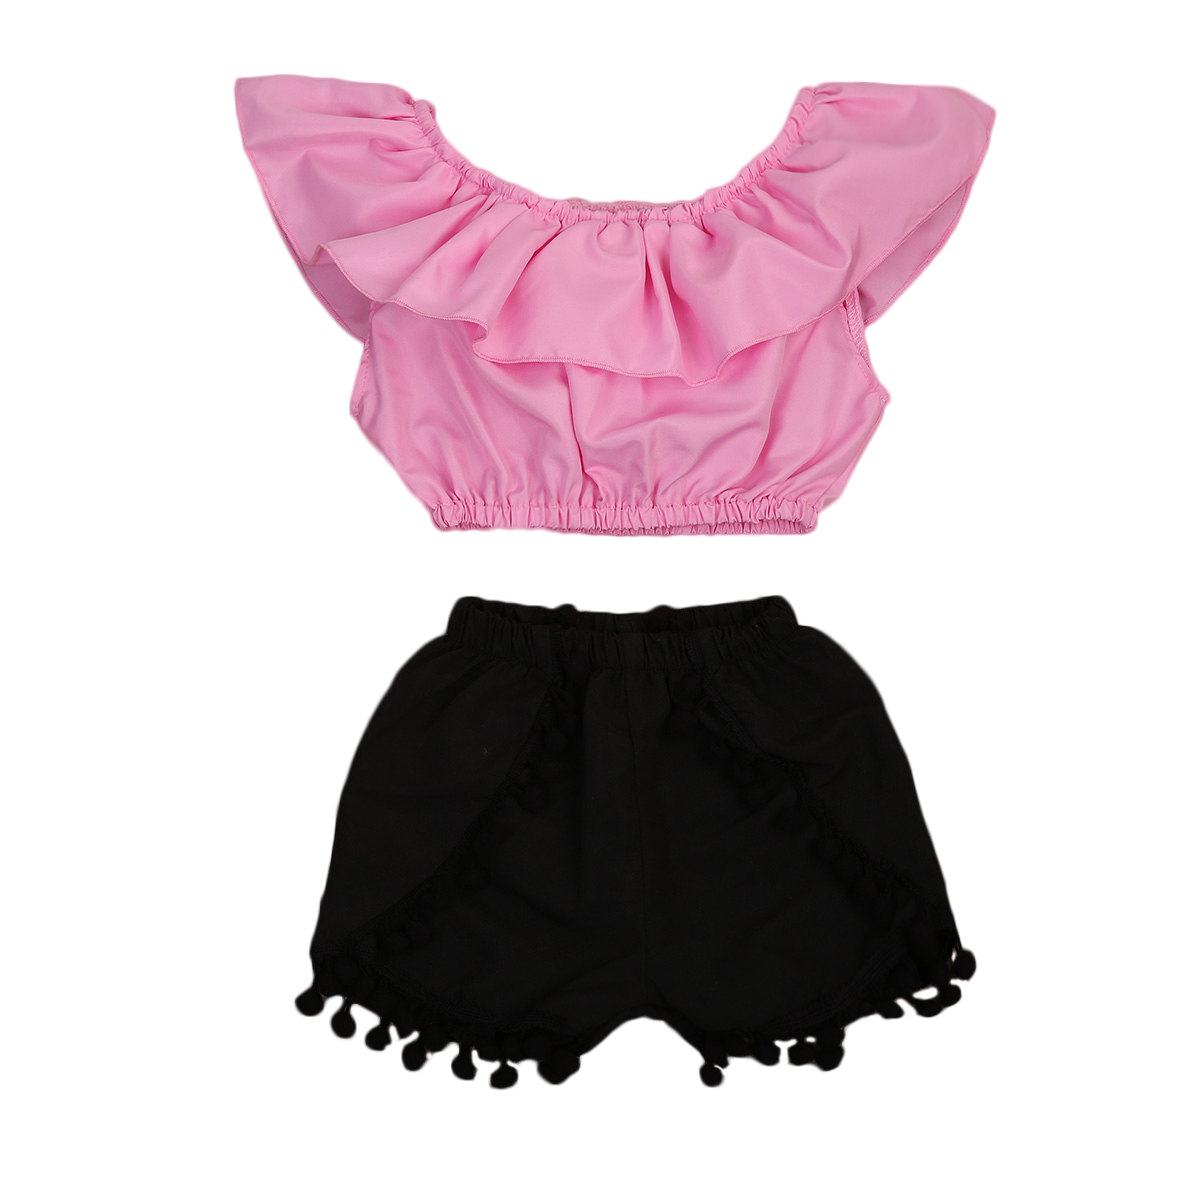 Pudcoco Kids Toddler Baby Girl Clothes Summer Off Shoulder Ruffle Crop Top Tank+Short Pants Outfit Summer Tassel Two Piece Set summer casual denim newborn toddler baby girl clothing kids off shoulder crop tops shorts outfit clothes set